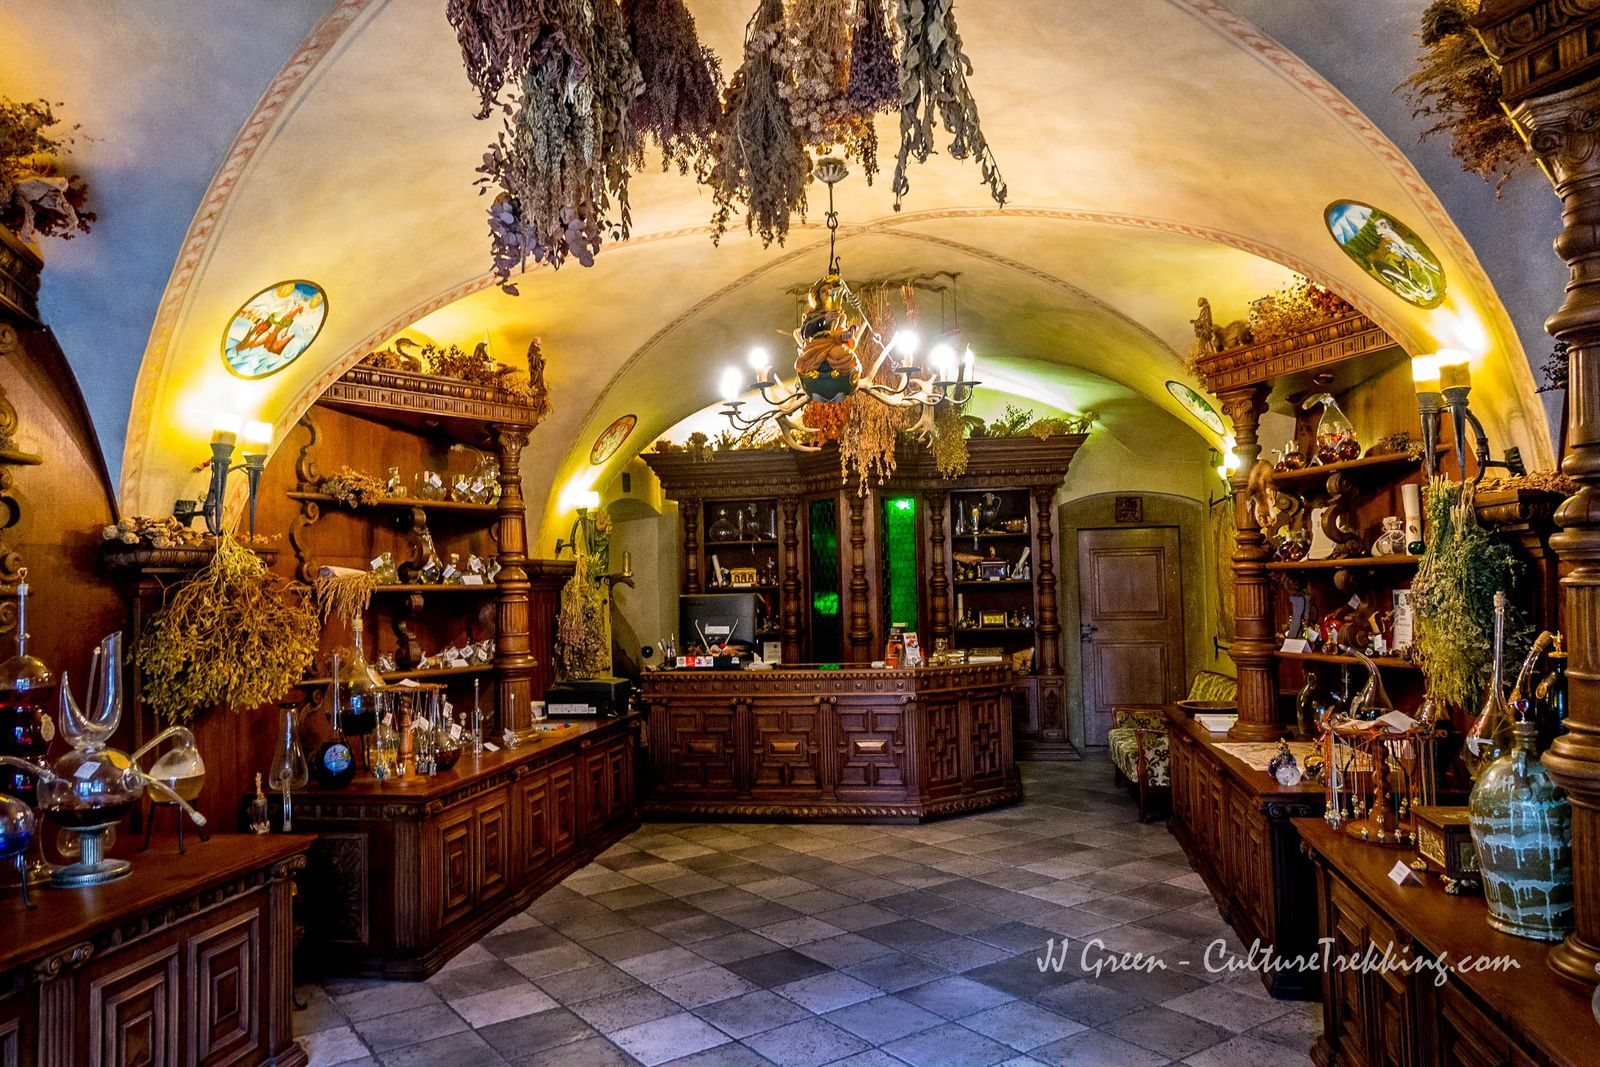 The Alchemist Museum in Prague